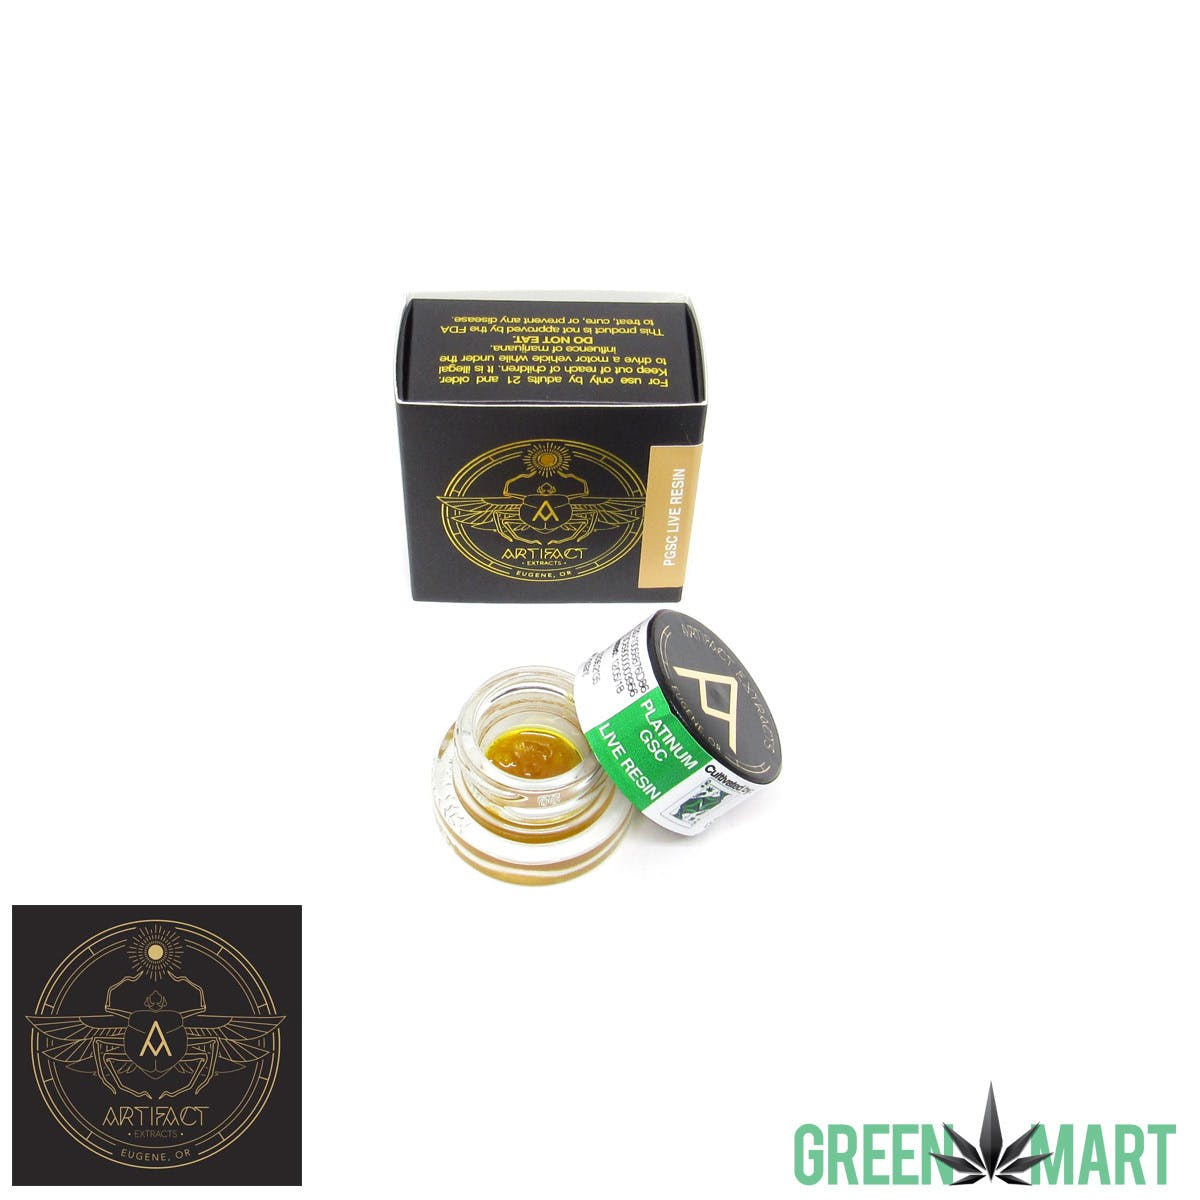 concentrate-artifact-extracts-1g-live-resin-platinum-gsc